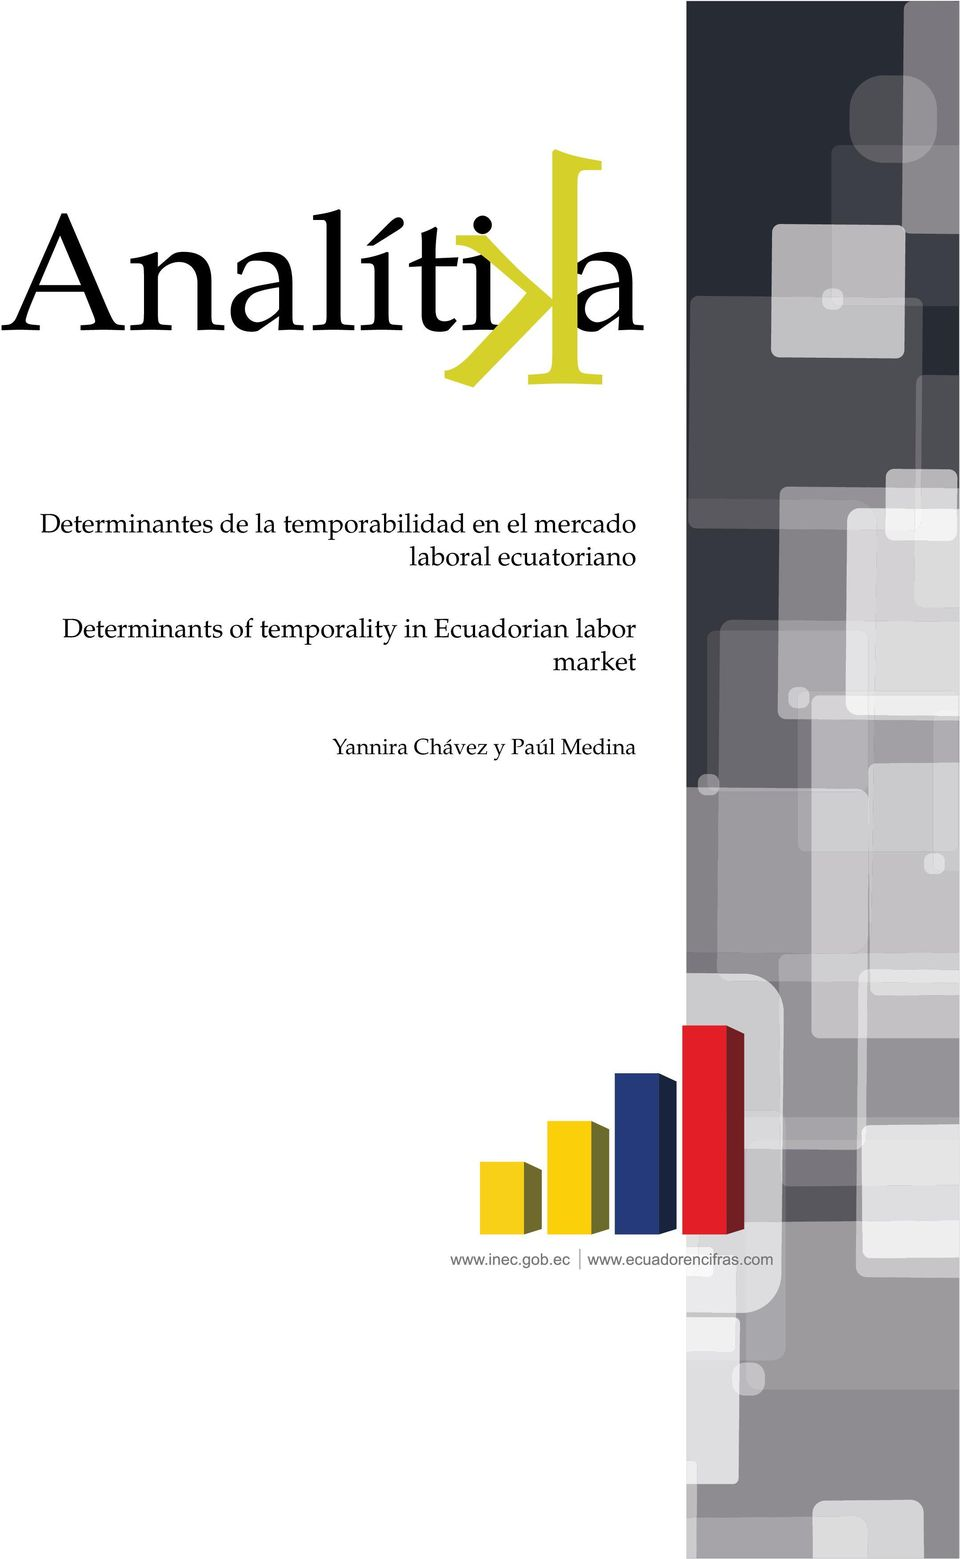 ecuatoriano Determinants of temporality